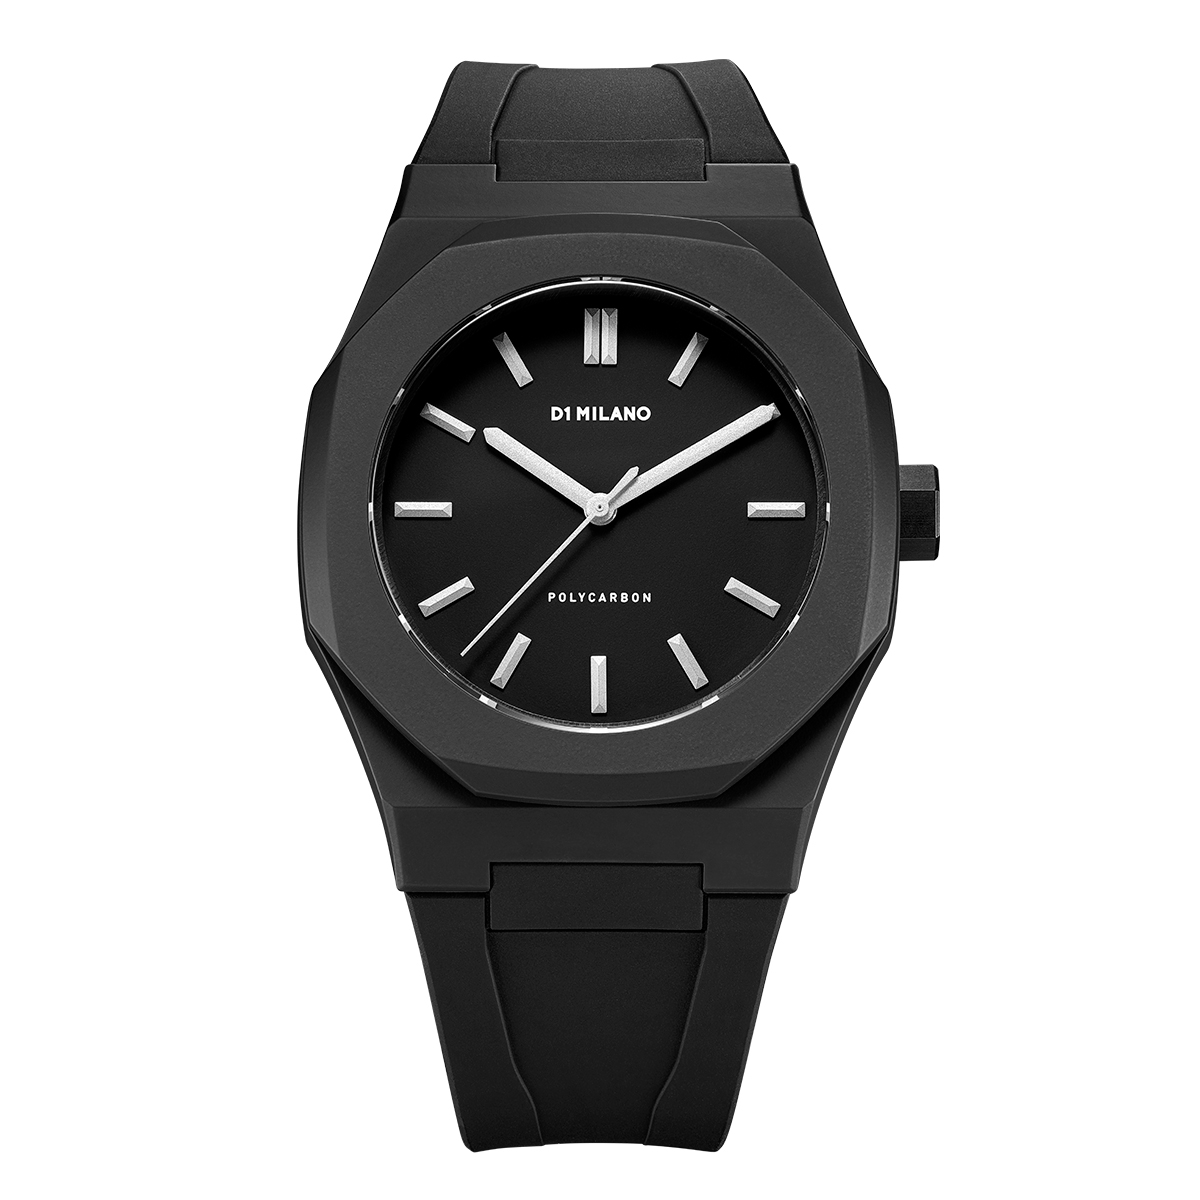 D1ミラノPCRJ02 Essential Watch Black with Silver Index with rubber strap 腕時計 メンズ レディース 有名人 愛用D1 MILANO ディーワン ミラノ 代引き 手数料無料 ギフト プレゼント クリスマス 誕生日 記念日 贈り物 人気 おしゃれ ペア 祝い セール 結婚式 お呼ばれ